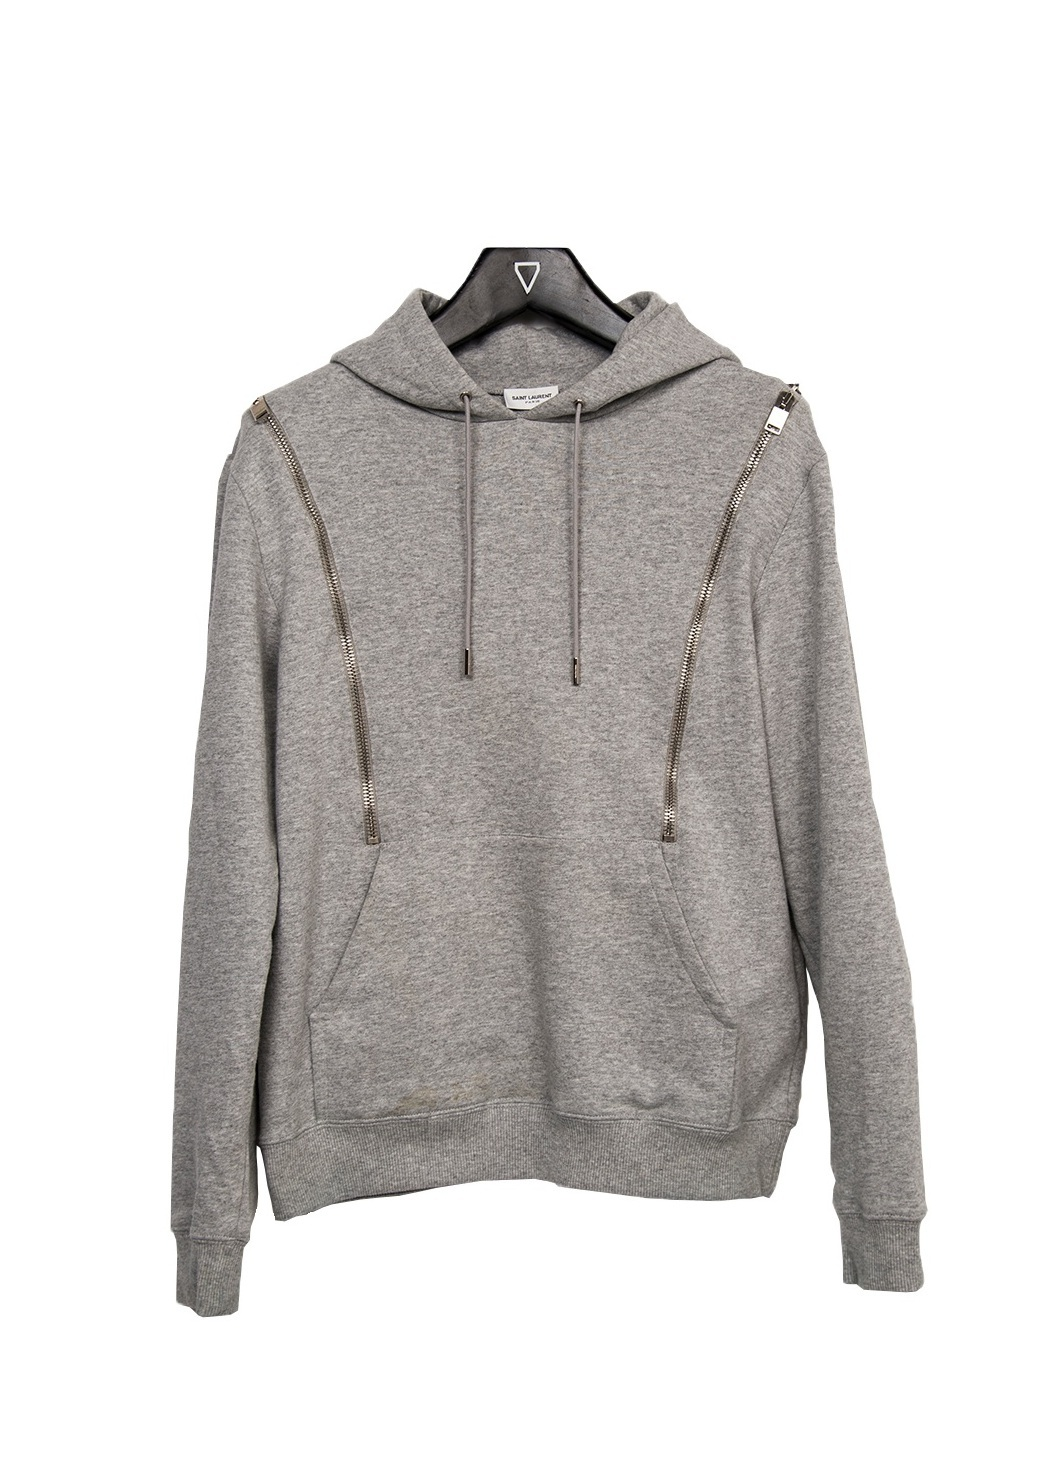 "40 SAINT LAURENT SWEATSHIRT ""SAINT-SWSH01"""